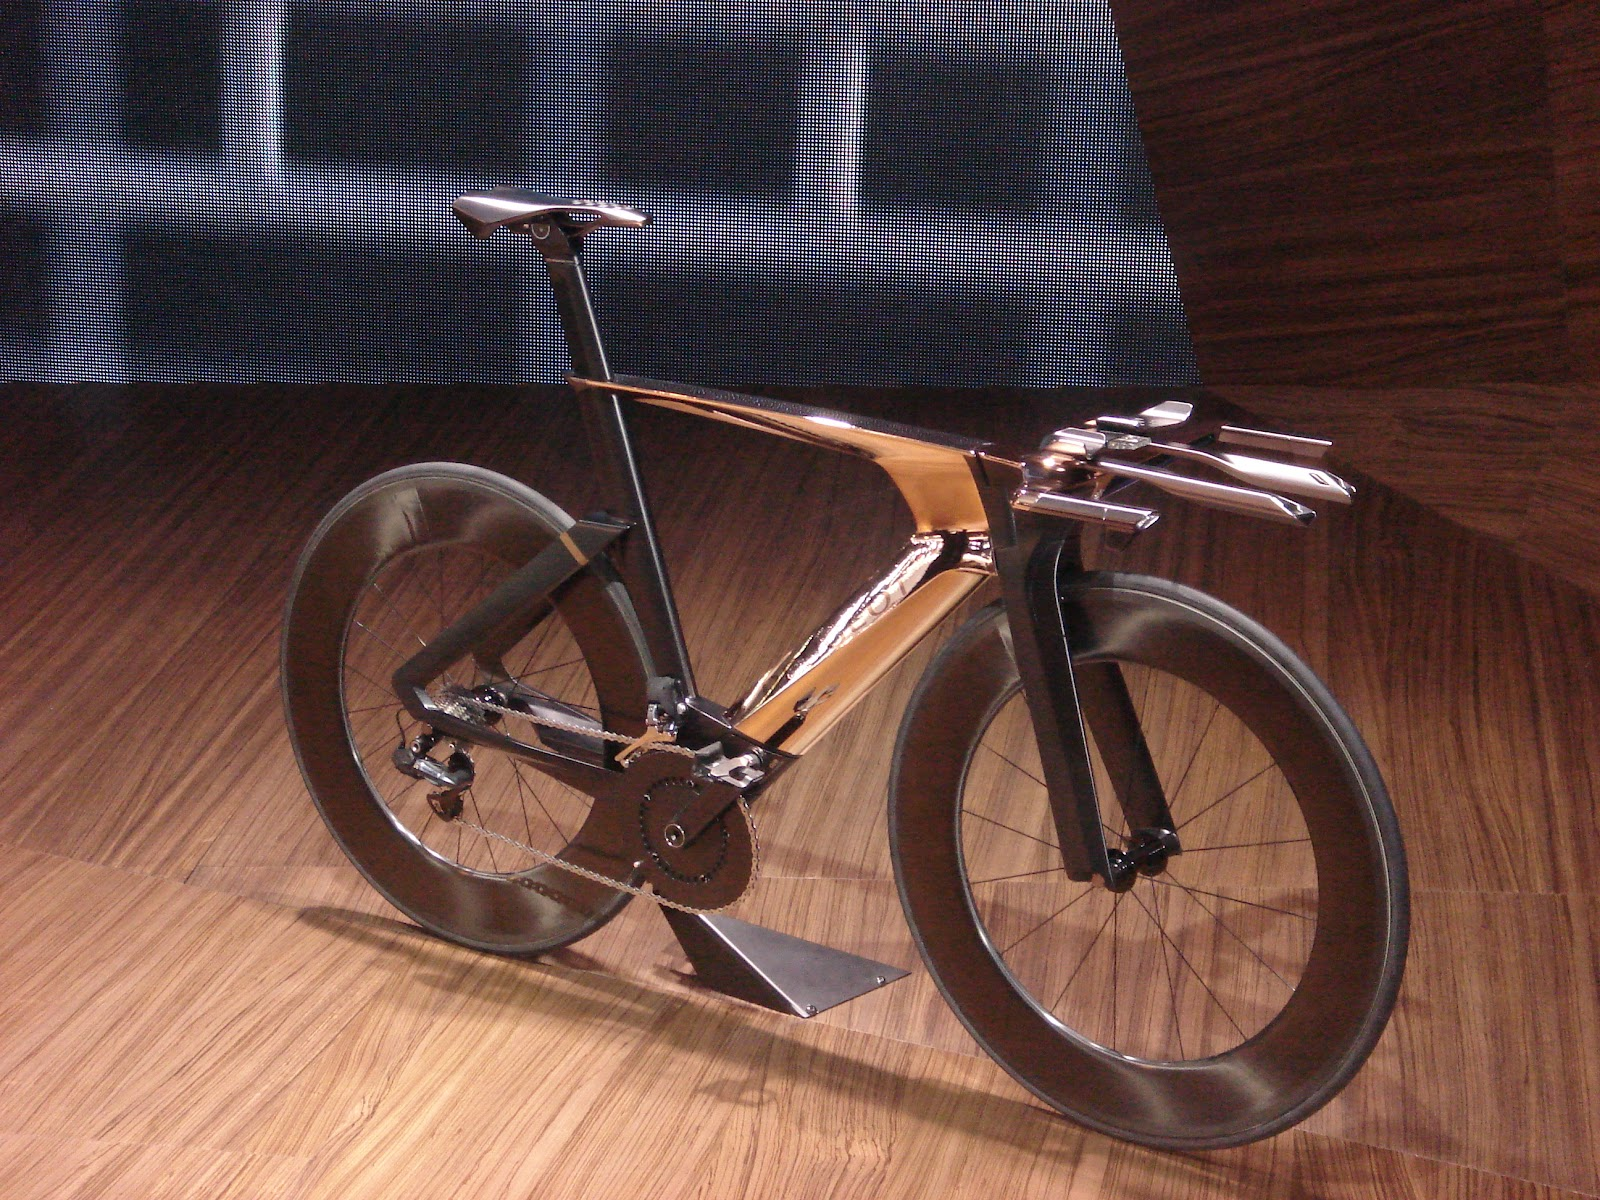 cycling&design: peugeot onyx superbike at paris show